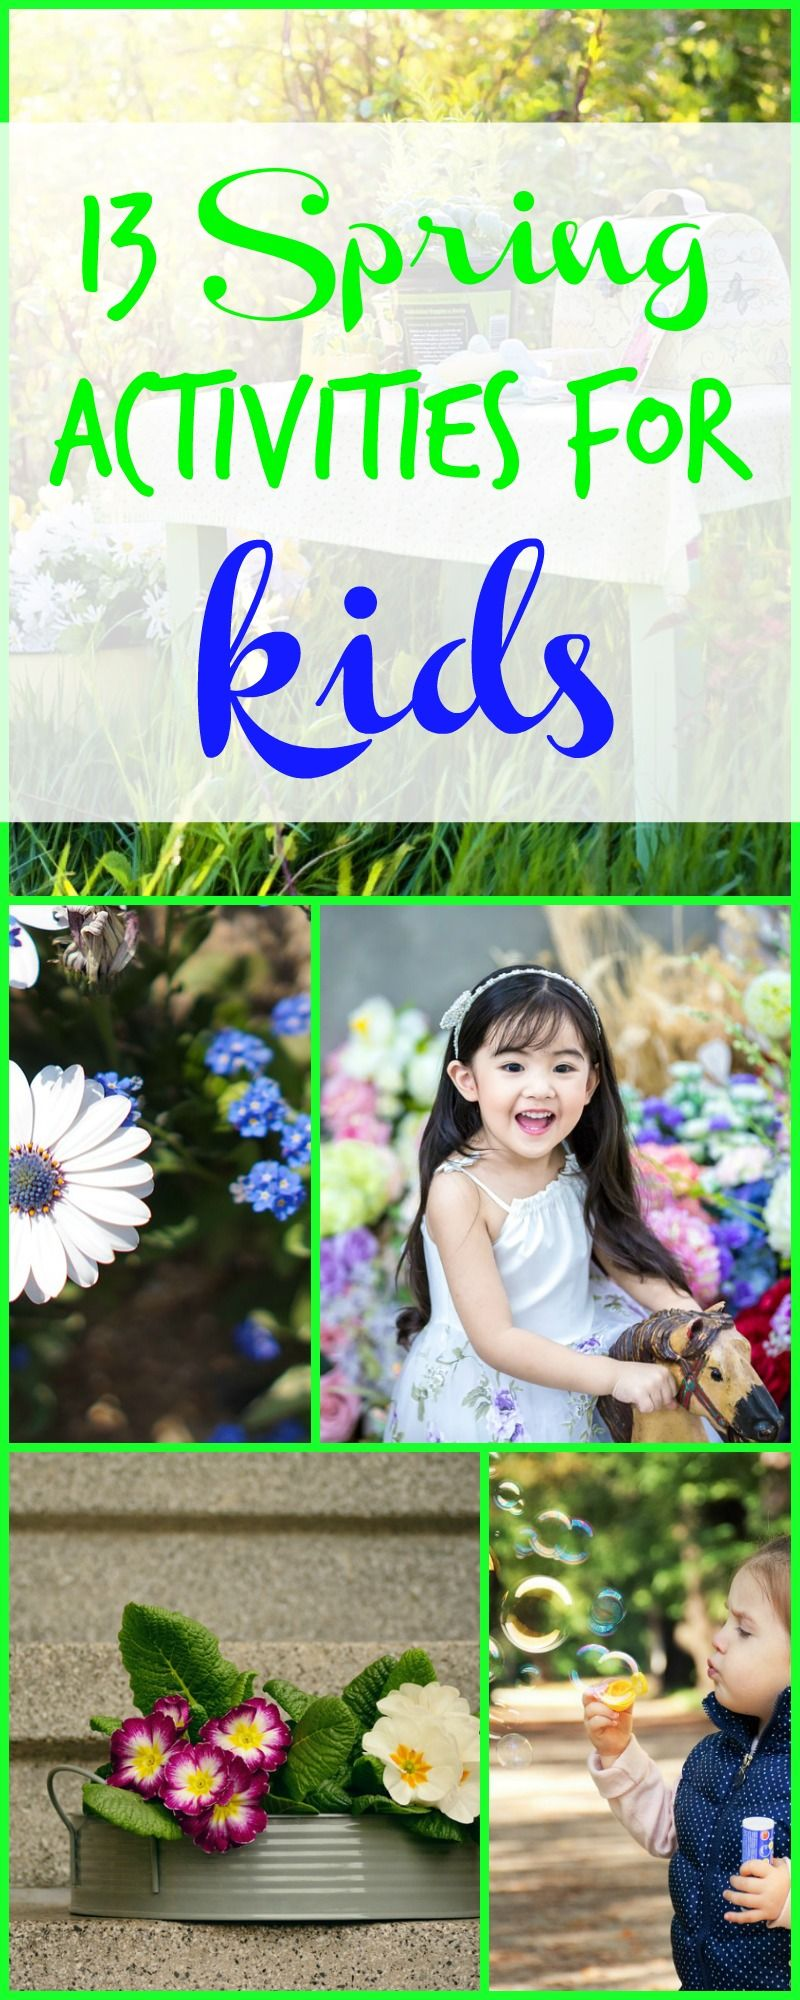 If you're ready to kick your kids outside...err...get outside with your kids after the winter, here are some ideas for family fun!  |Outdoor activities for kids|spring activities for kids|kids activities|kids springtime fun|family fun ideas|family fun tips|